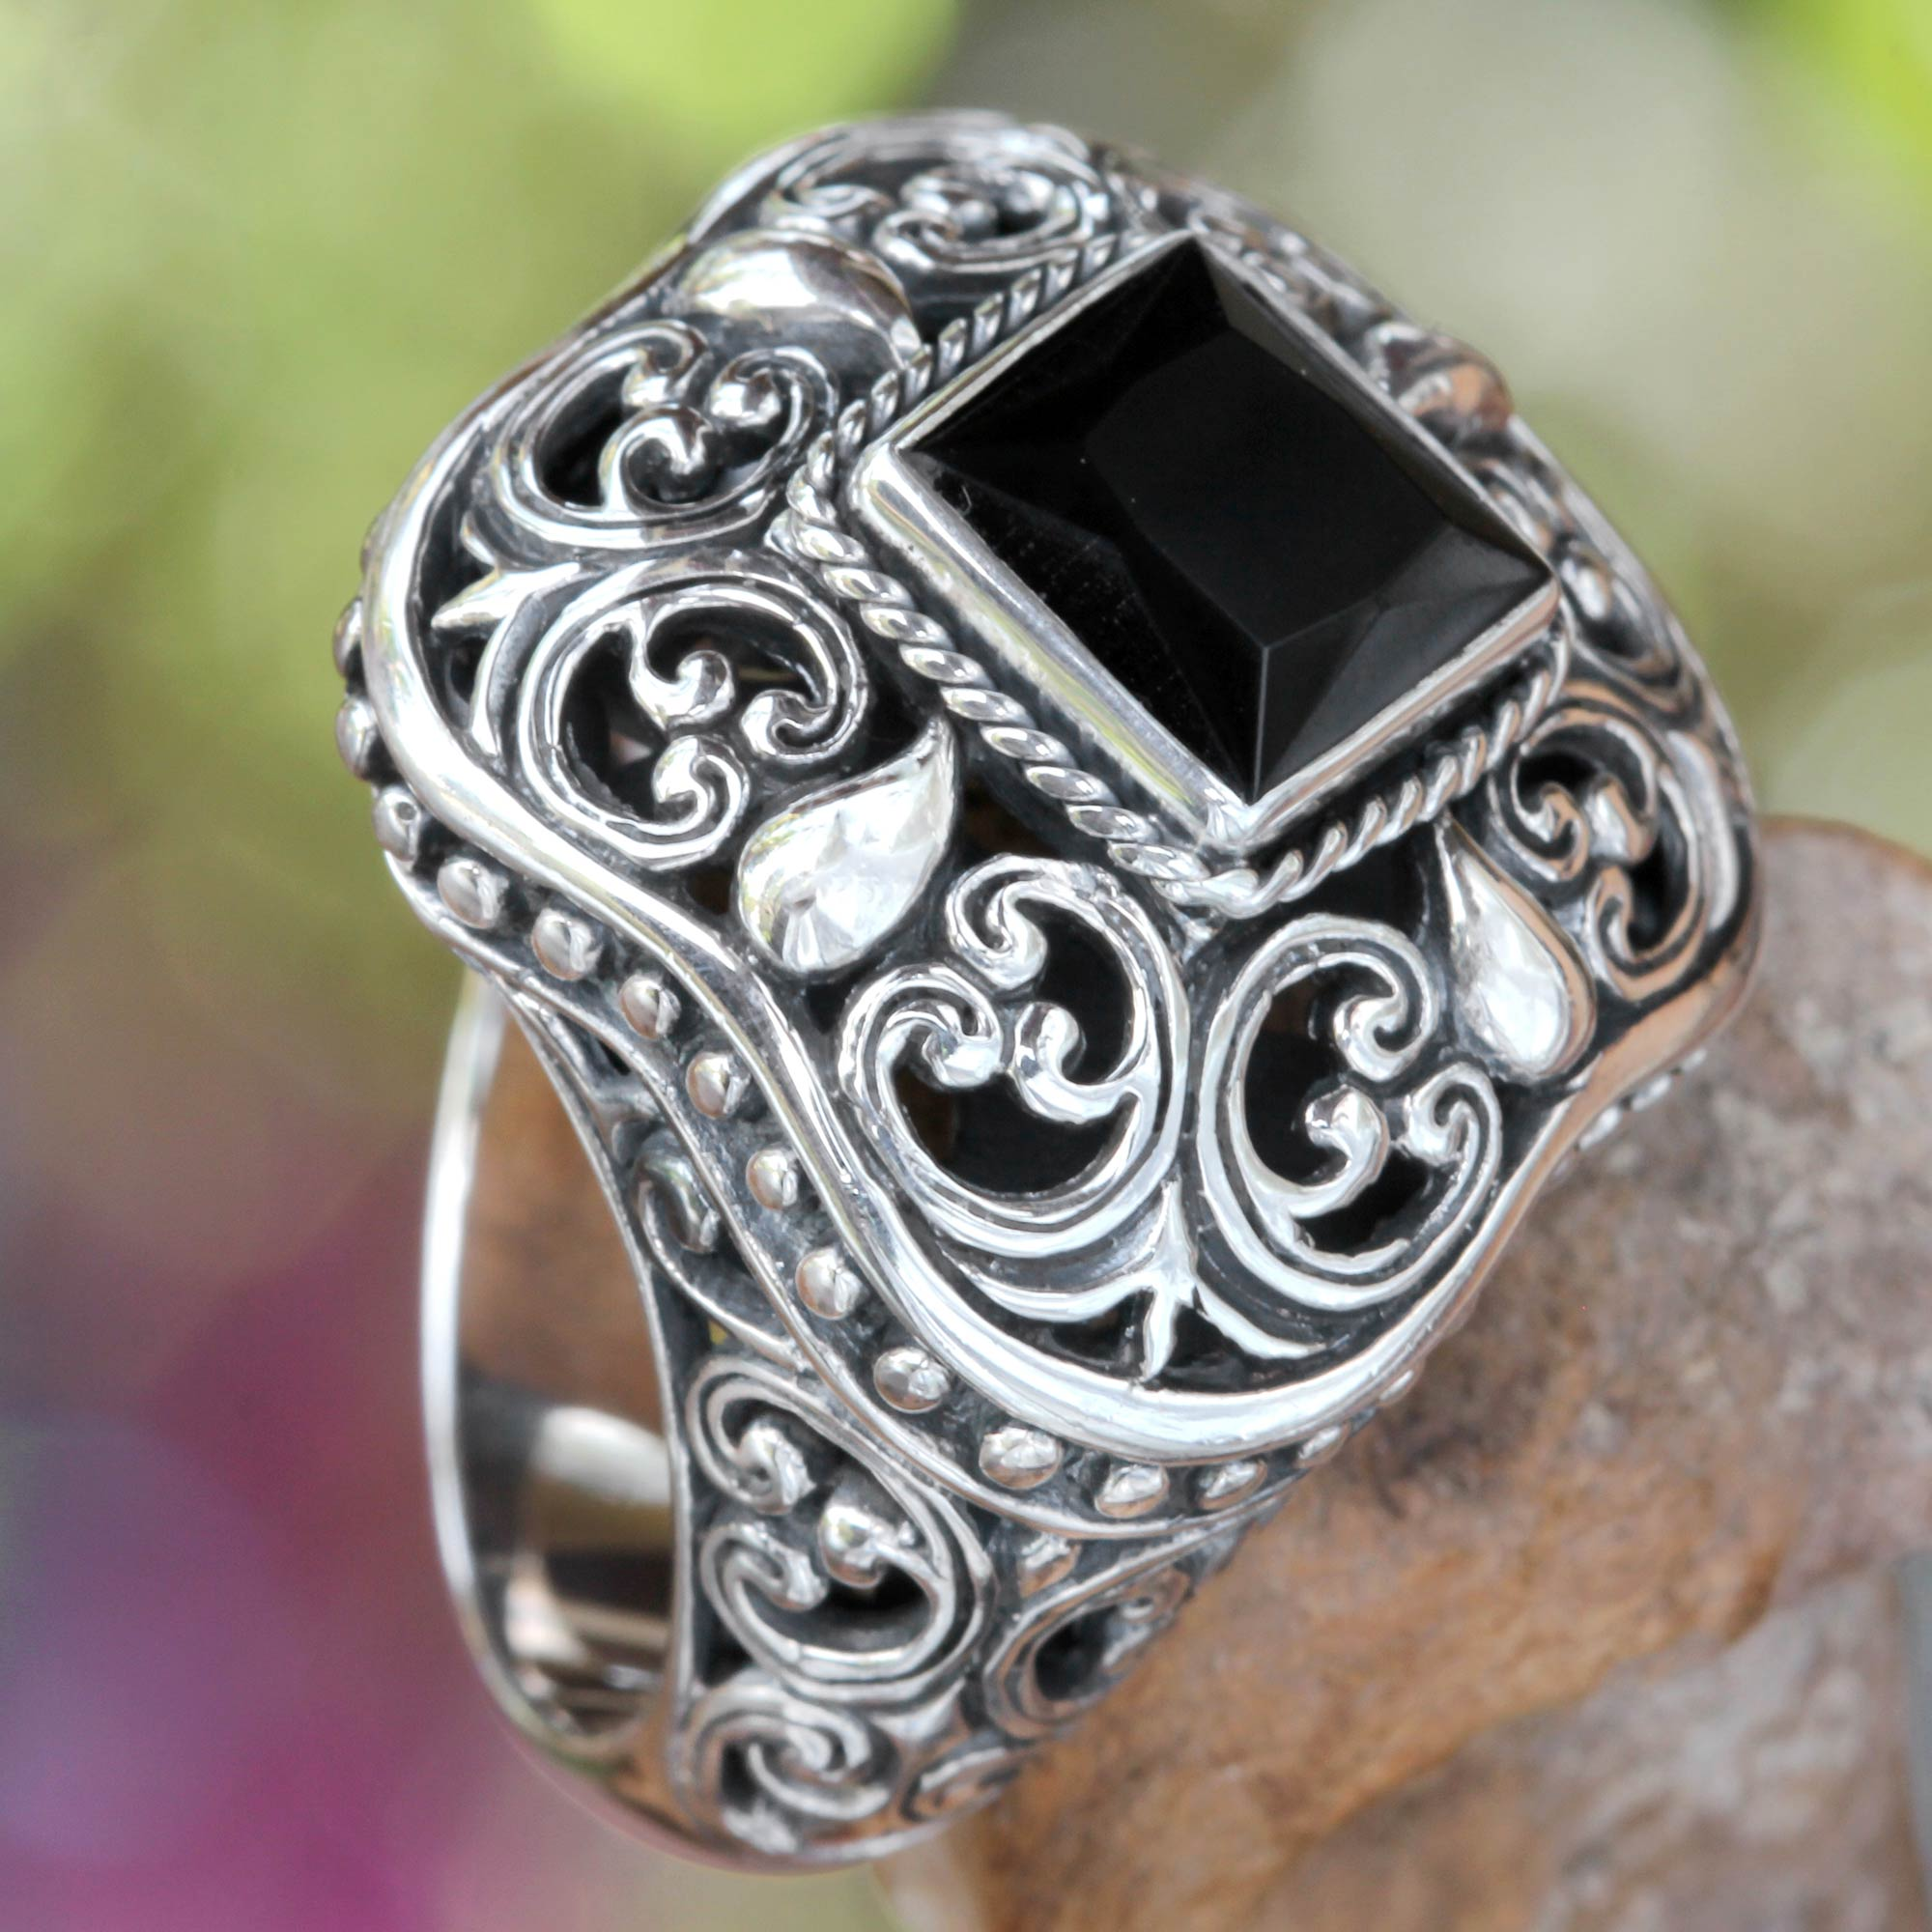 pin big ring rings wedding engagement black silver sterling eye gothic skull face